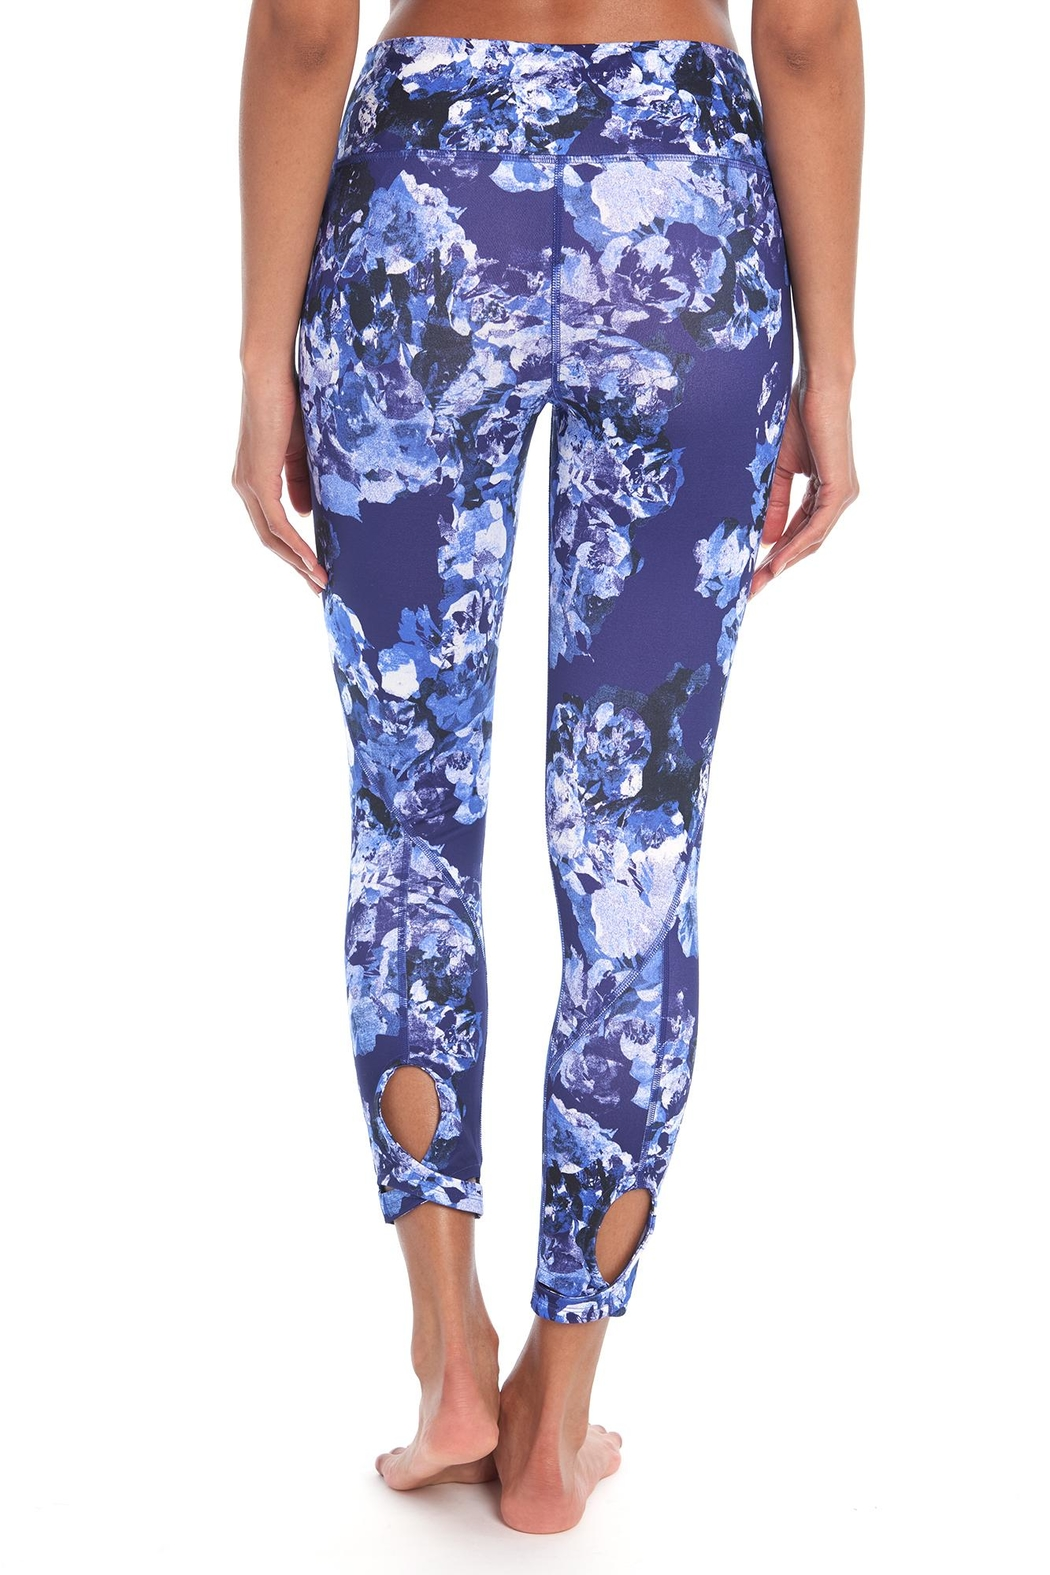 Lole Eliana Floral Leggings - Front Full Image